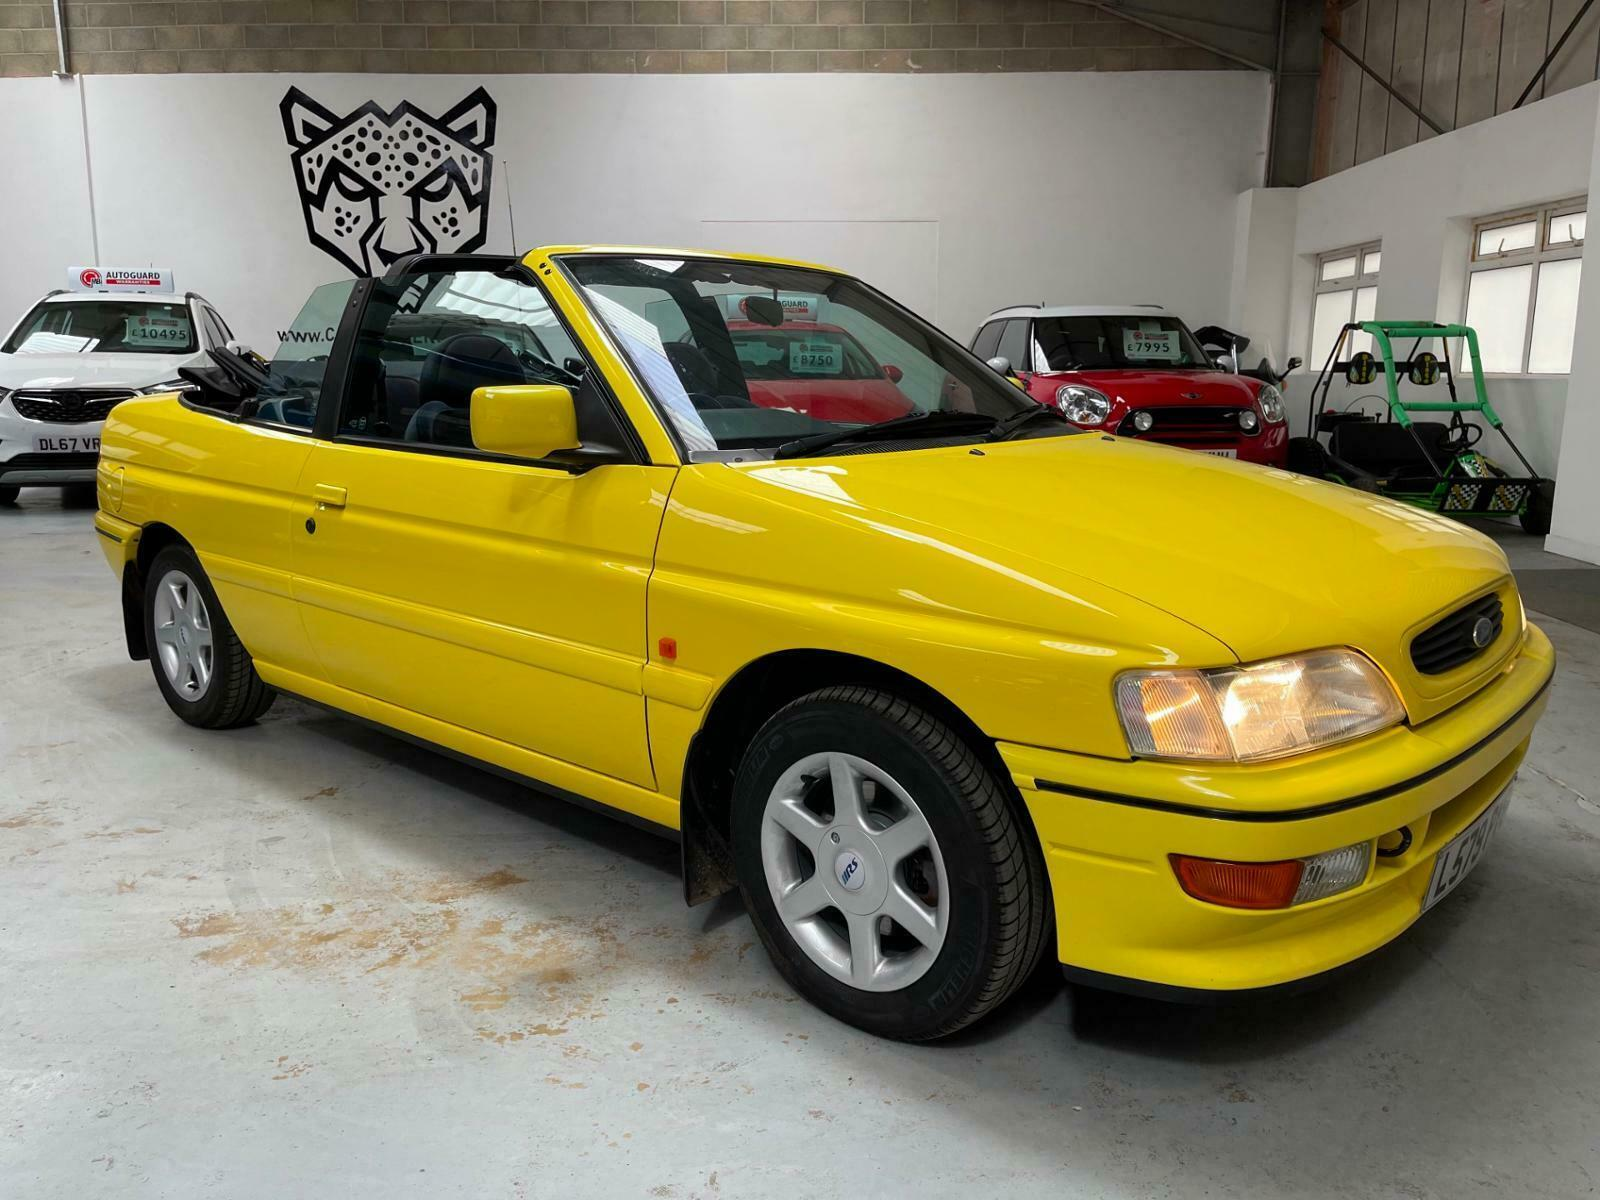 This Ford Escort Cabrio is served sunny side up